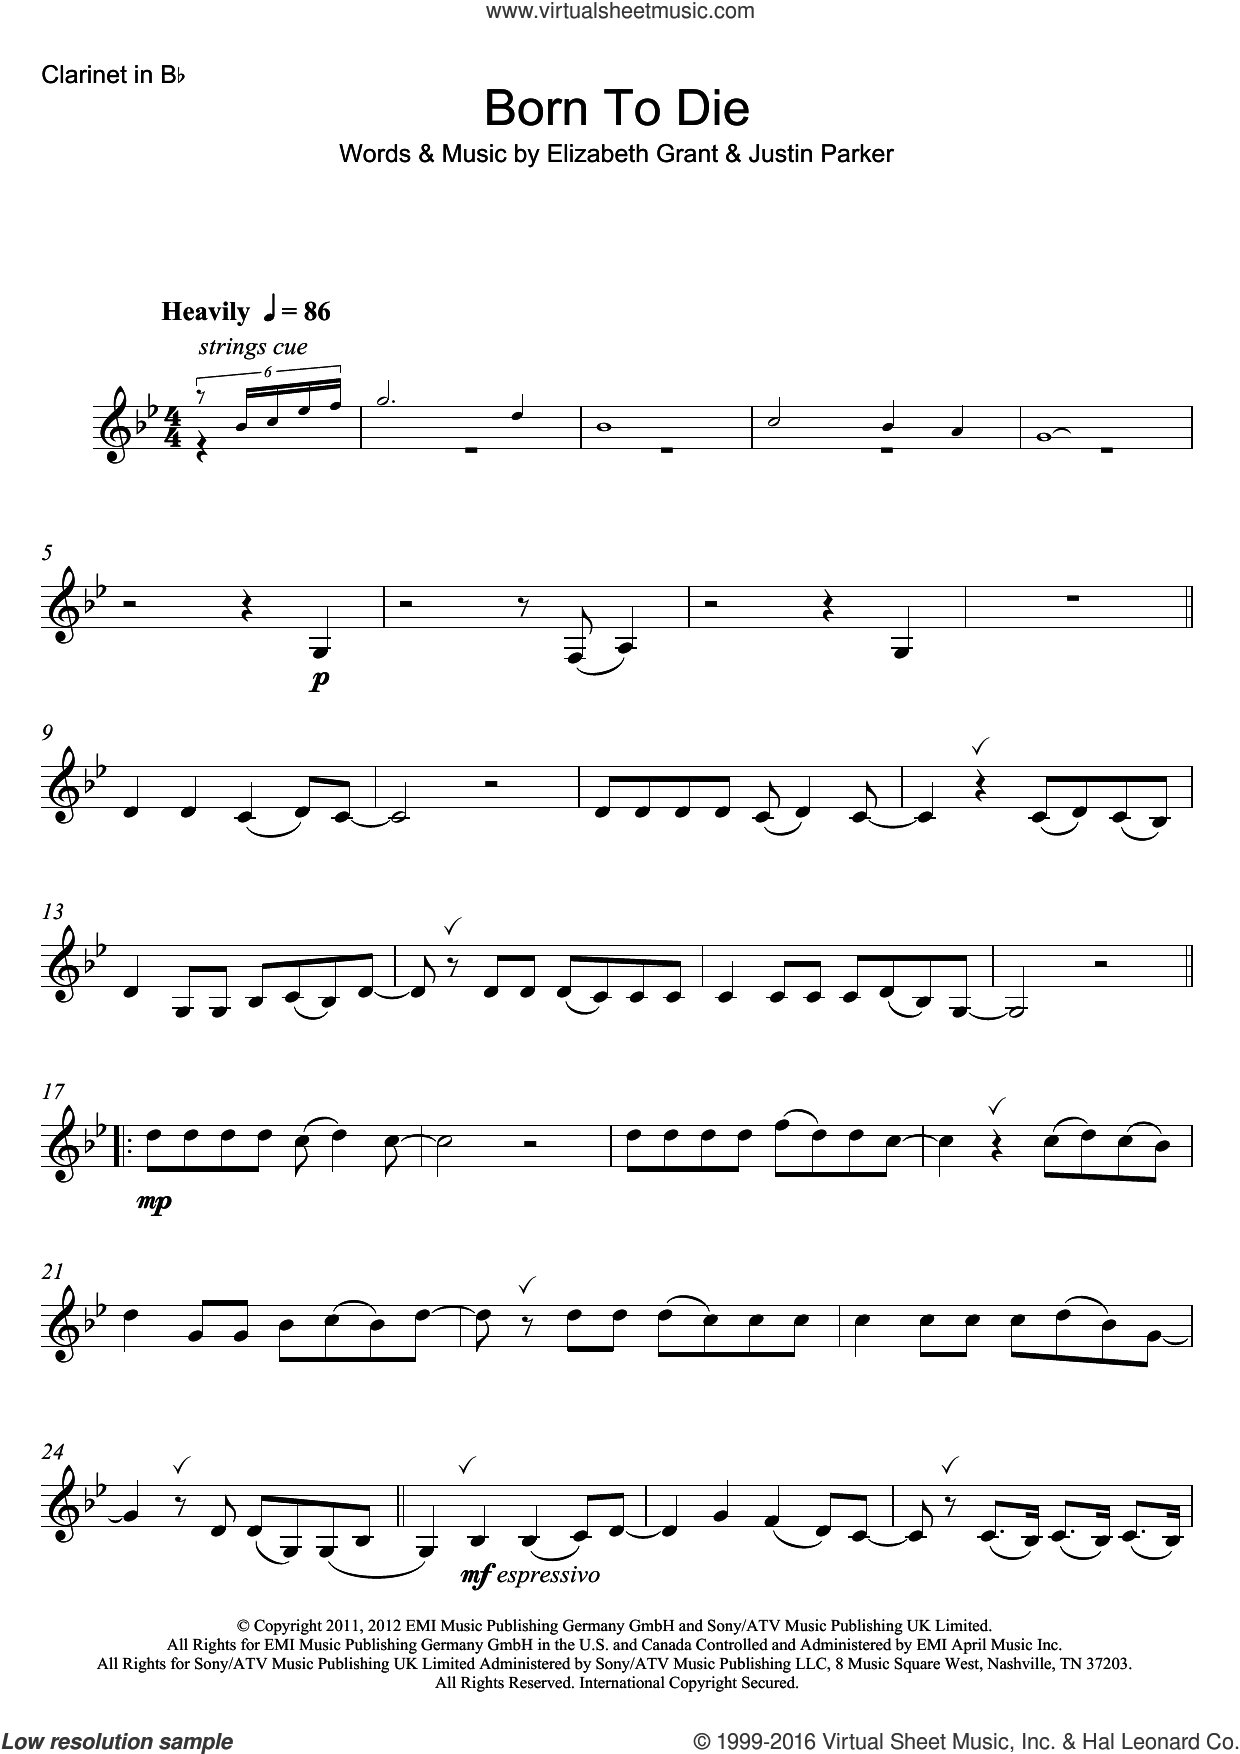 Born To Die sheet music for clarinet solo by Lana Del Rey, Elizabeth Grant and Justin Parker, intermediate skill level